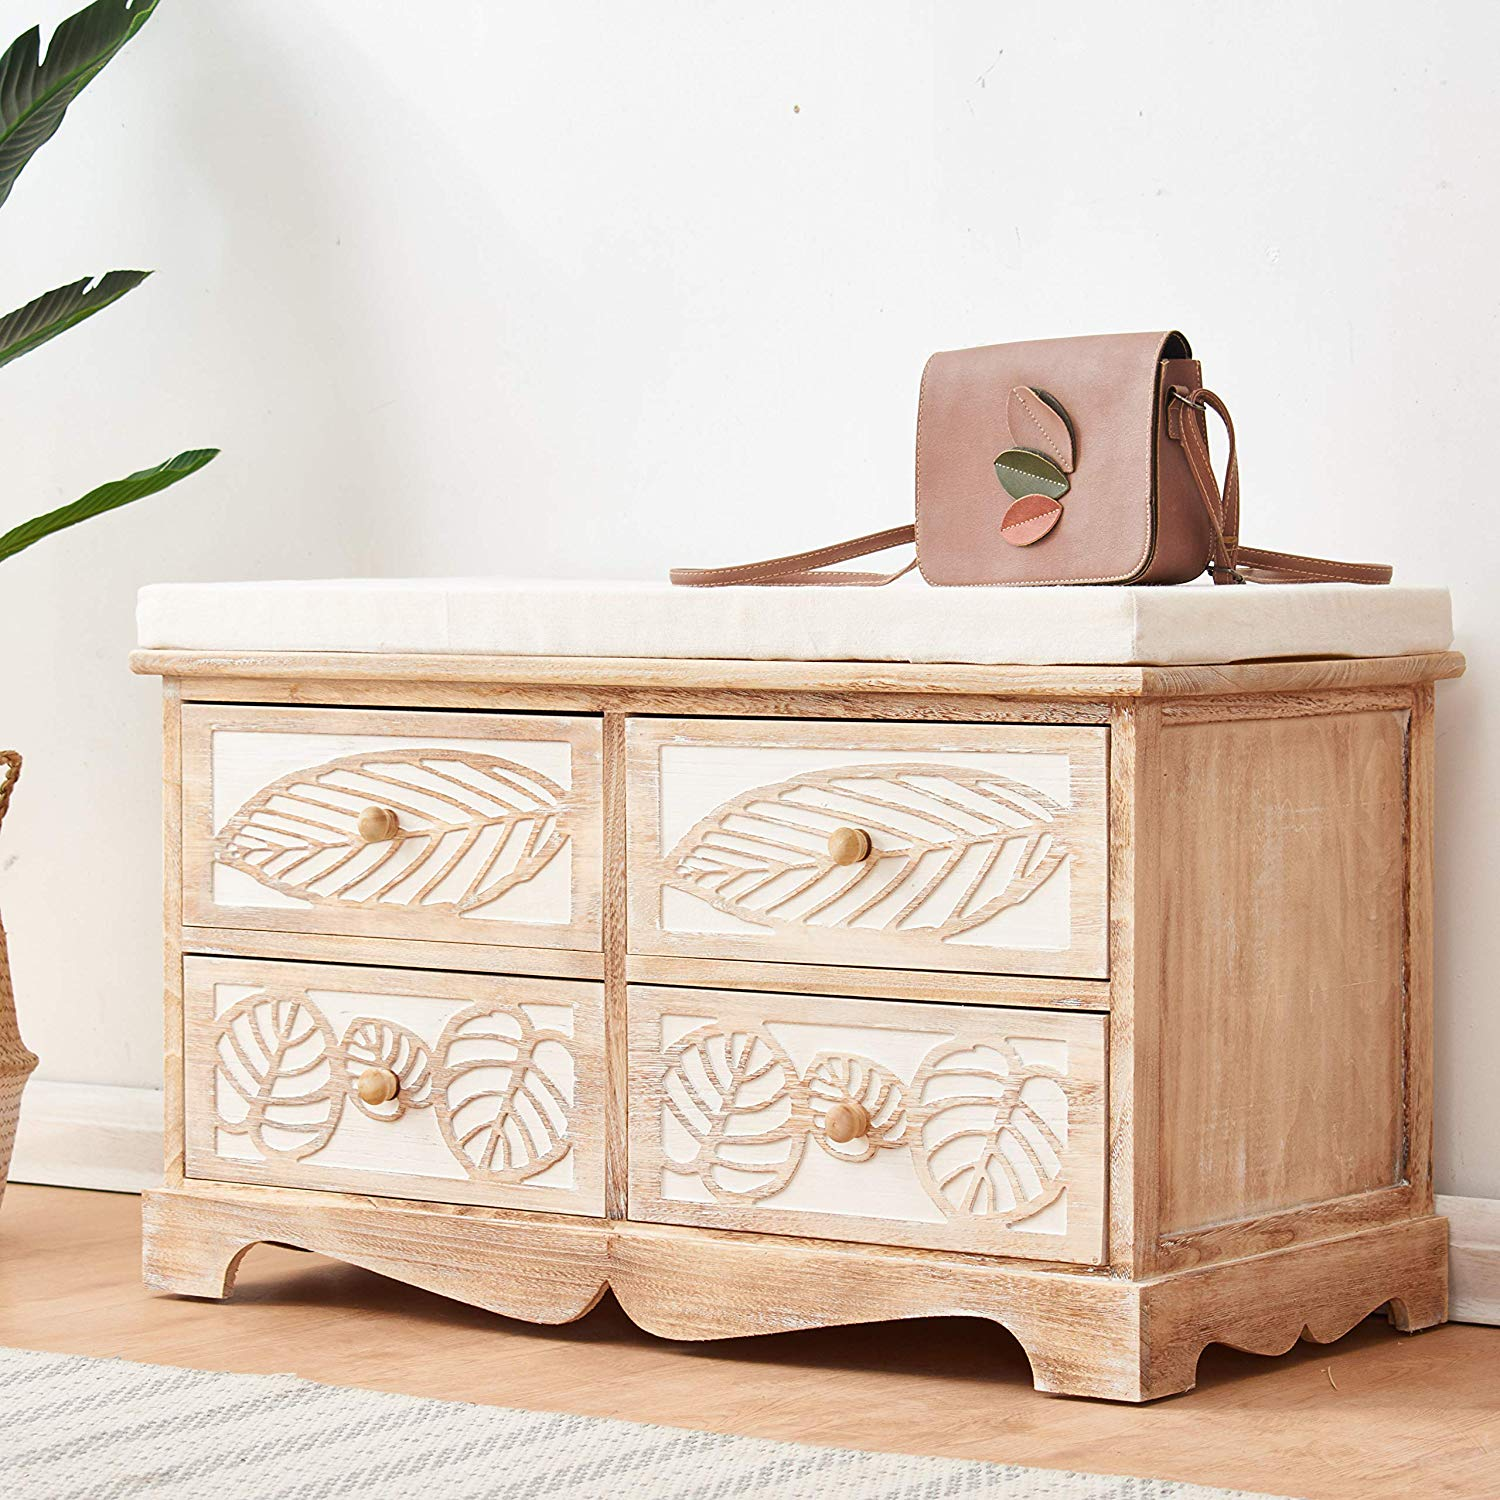 Cherry Tree Furniture Country Vintage Style Wooden Sculpted 4-Drawer Cushioned Shoe Bench Storage Bench